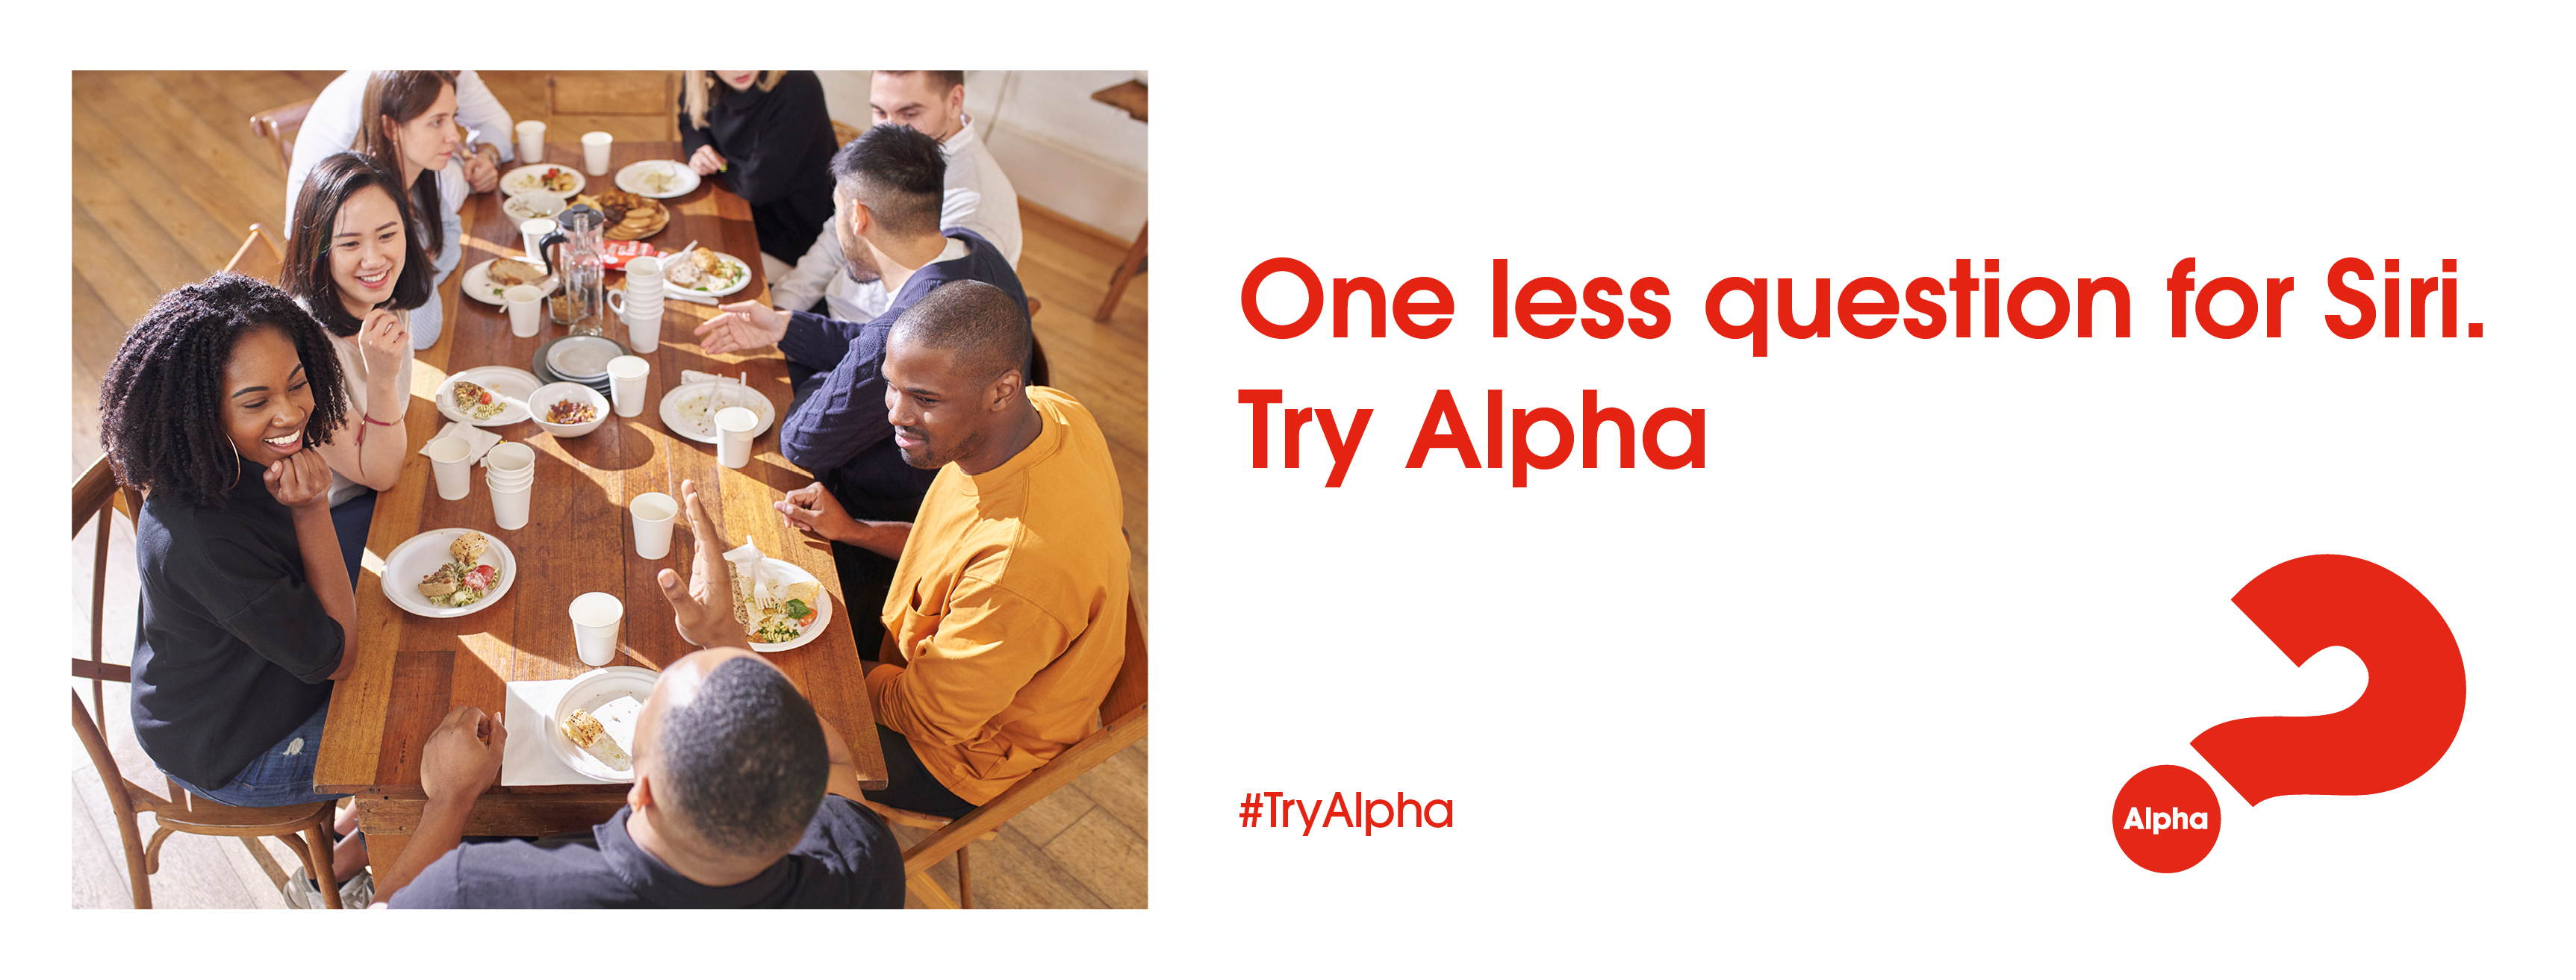 Alpha_Invite 2019_Facebook banners_One less question_3